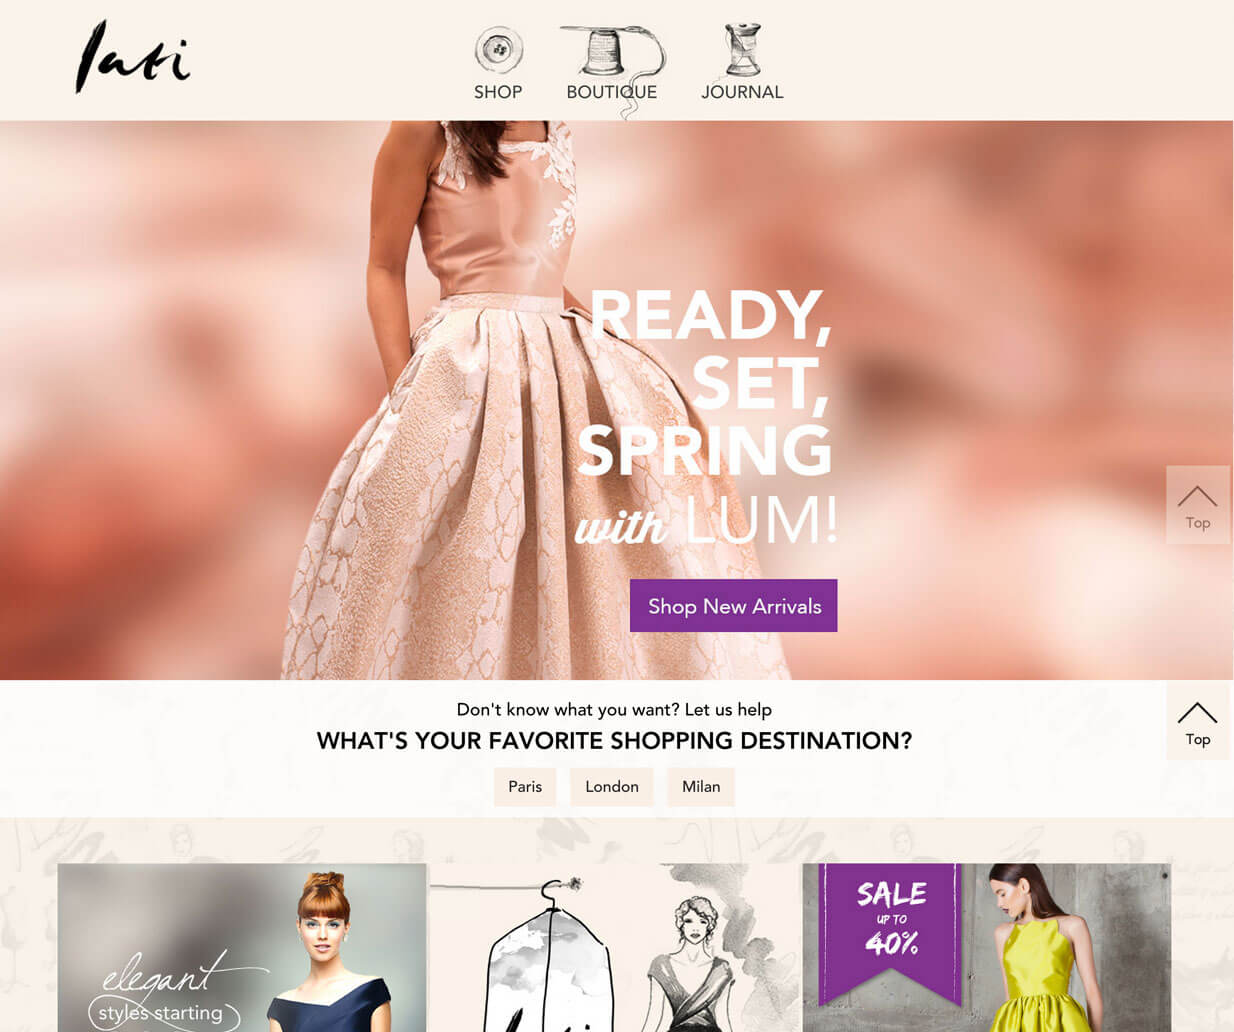 lati fashion website custom features